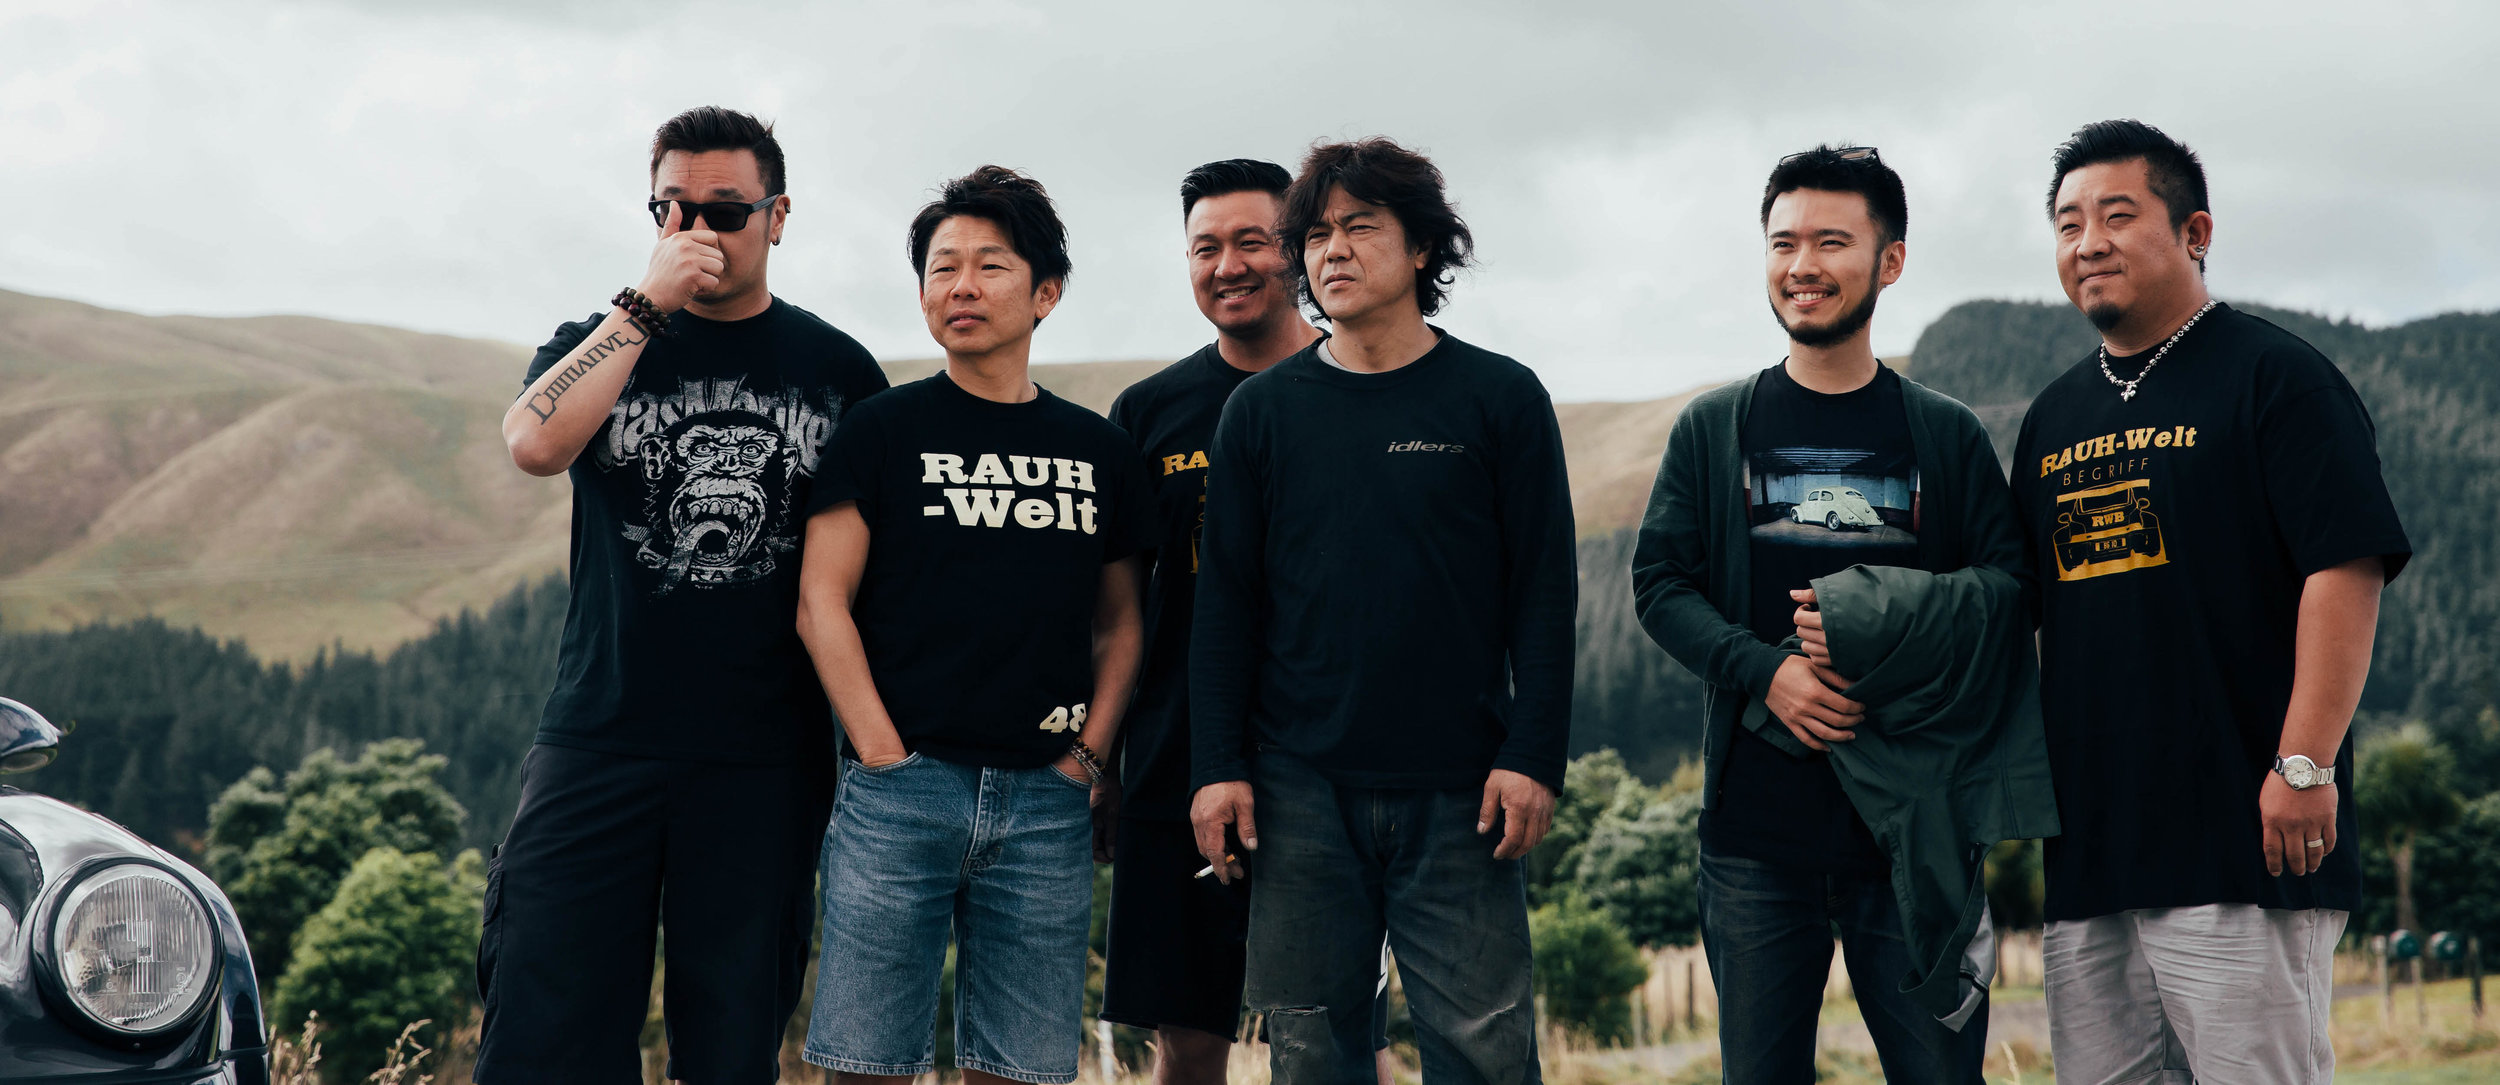 Not only do I enjoy taking photos of cars, but I also love capturing the people behind the cars. This is the RWB family at the RWB NZ build. Left to right: Christian Coujin, Ichiraku Toshiya, Anthony Wong, Akira Nakai, Chern Wong, and Nan Su.